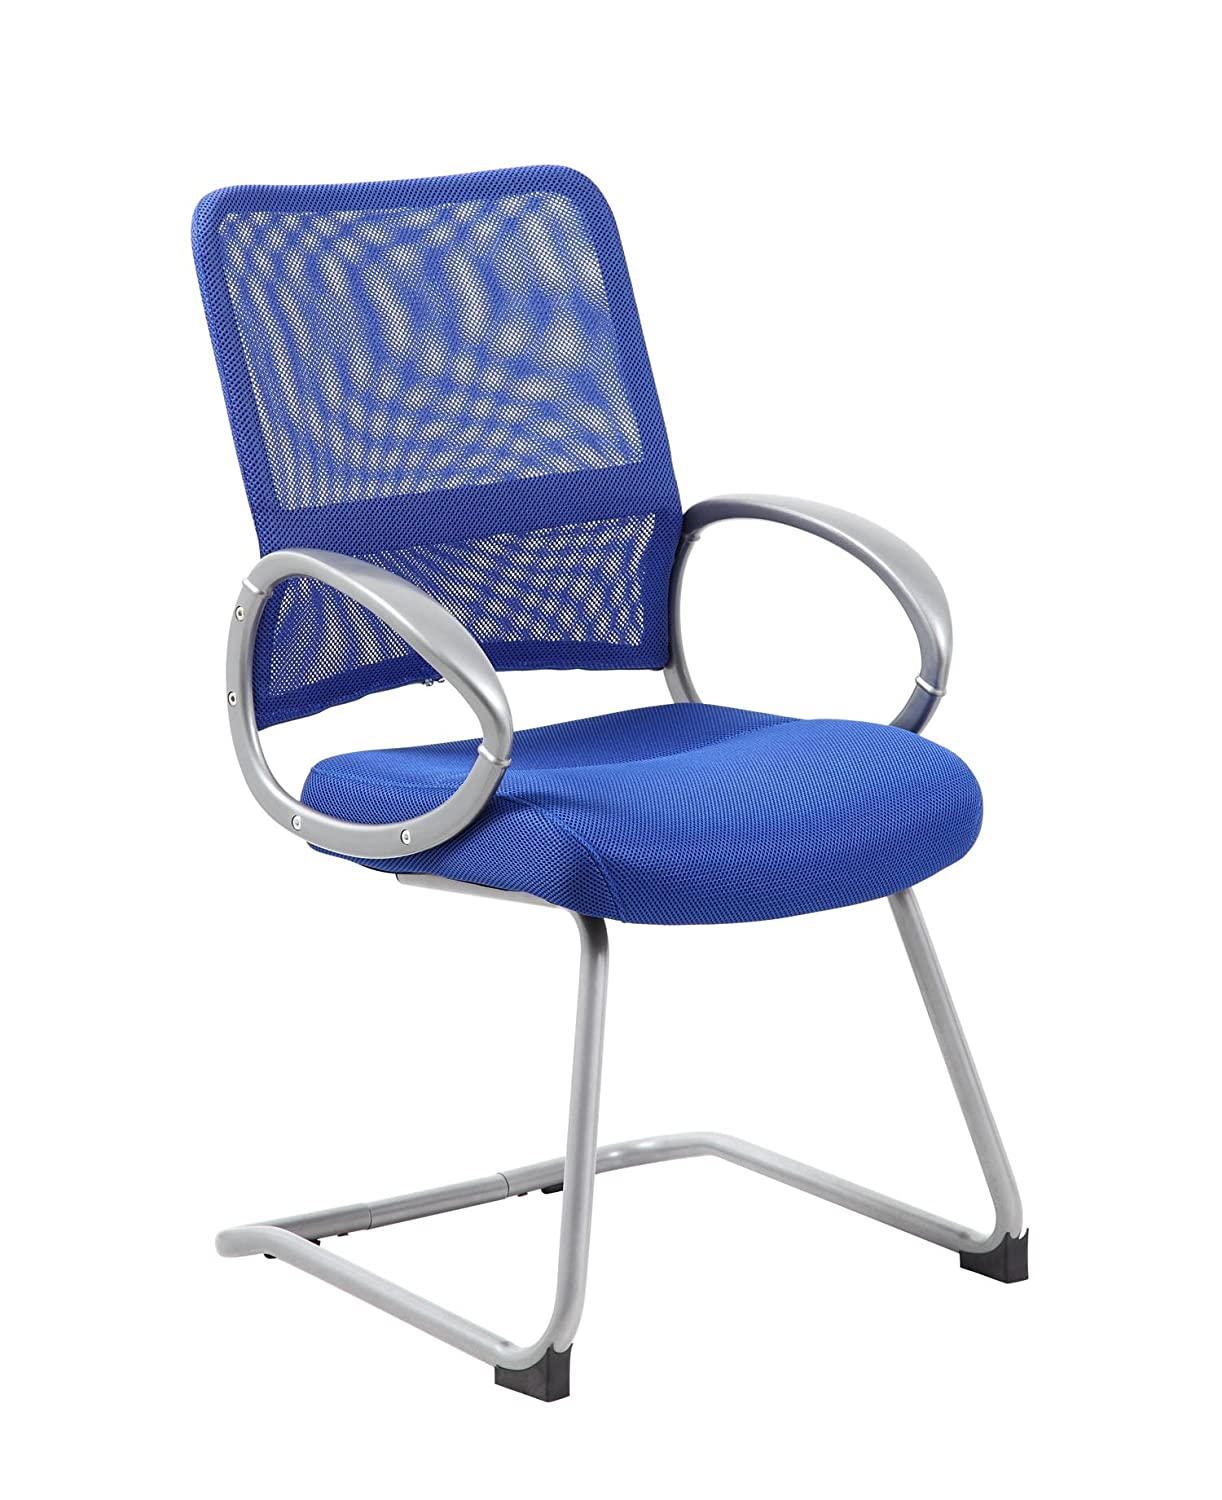 Boss Office Products B6419-BE Mesh Back Guest Chair with Pewter Finish in Blue